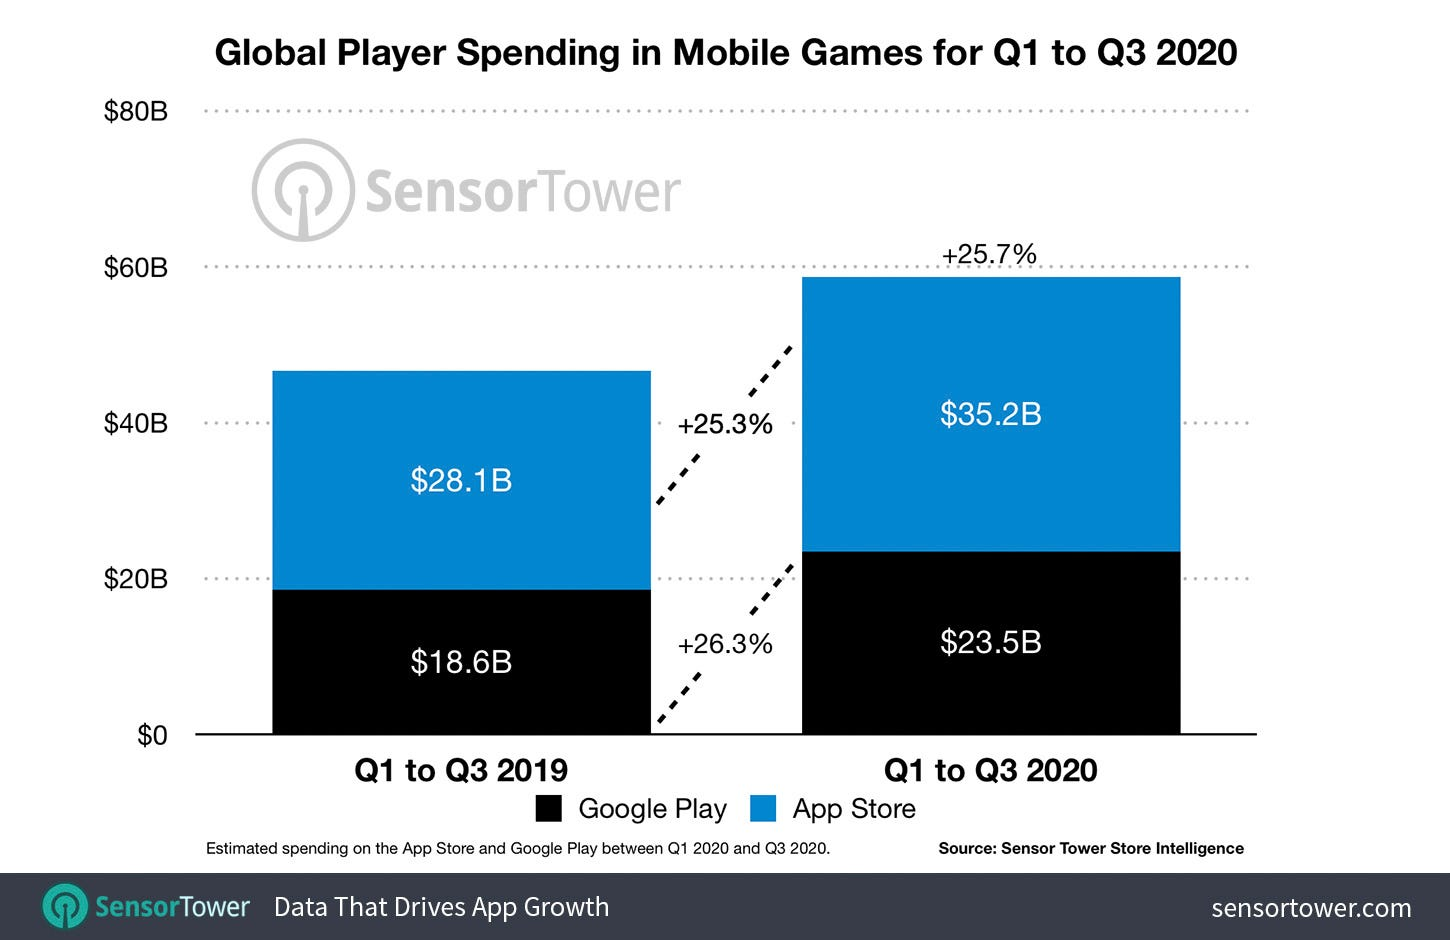 Global Player Spending in Mobile Games for Q1 to Q3 2020